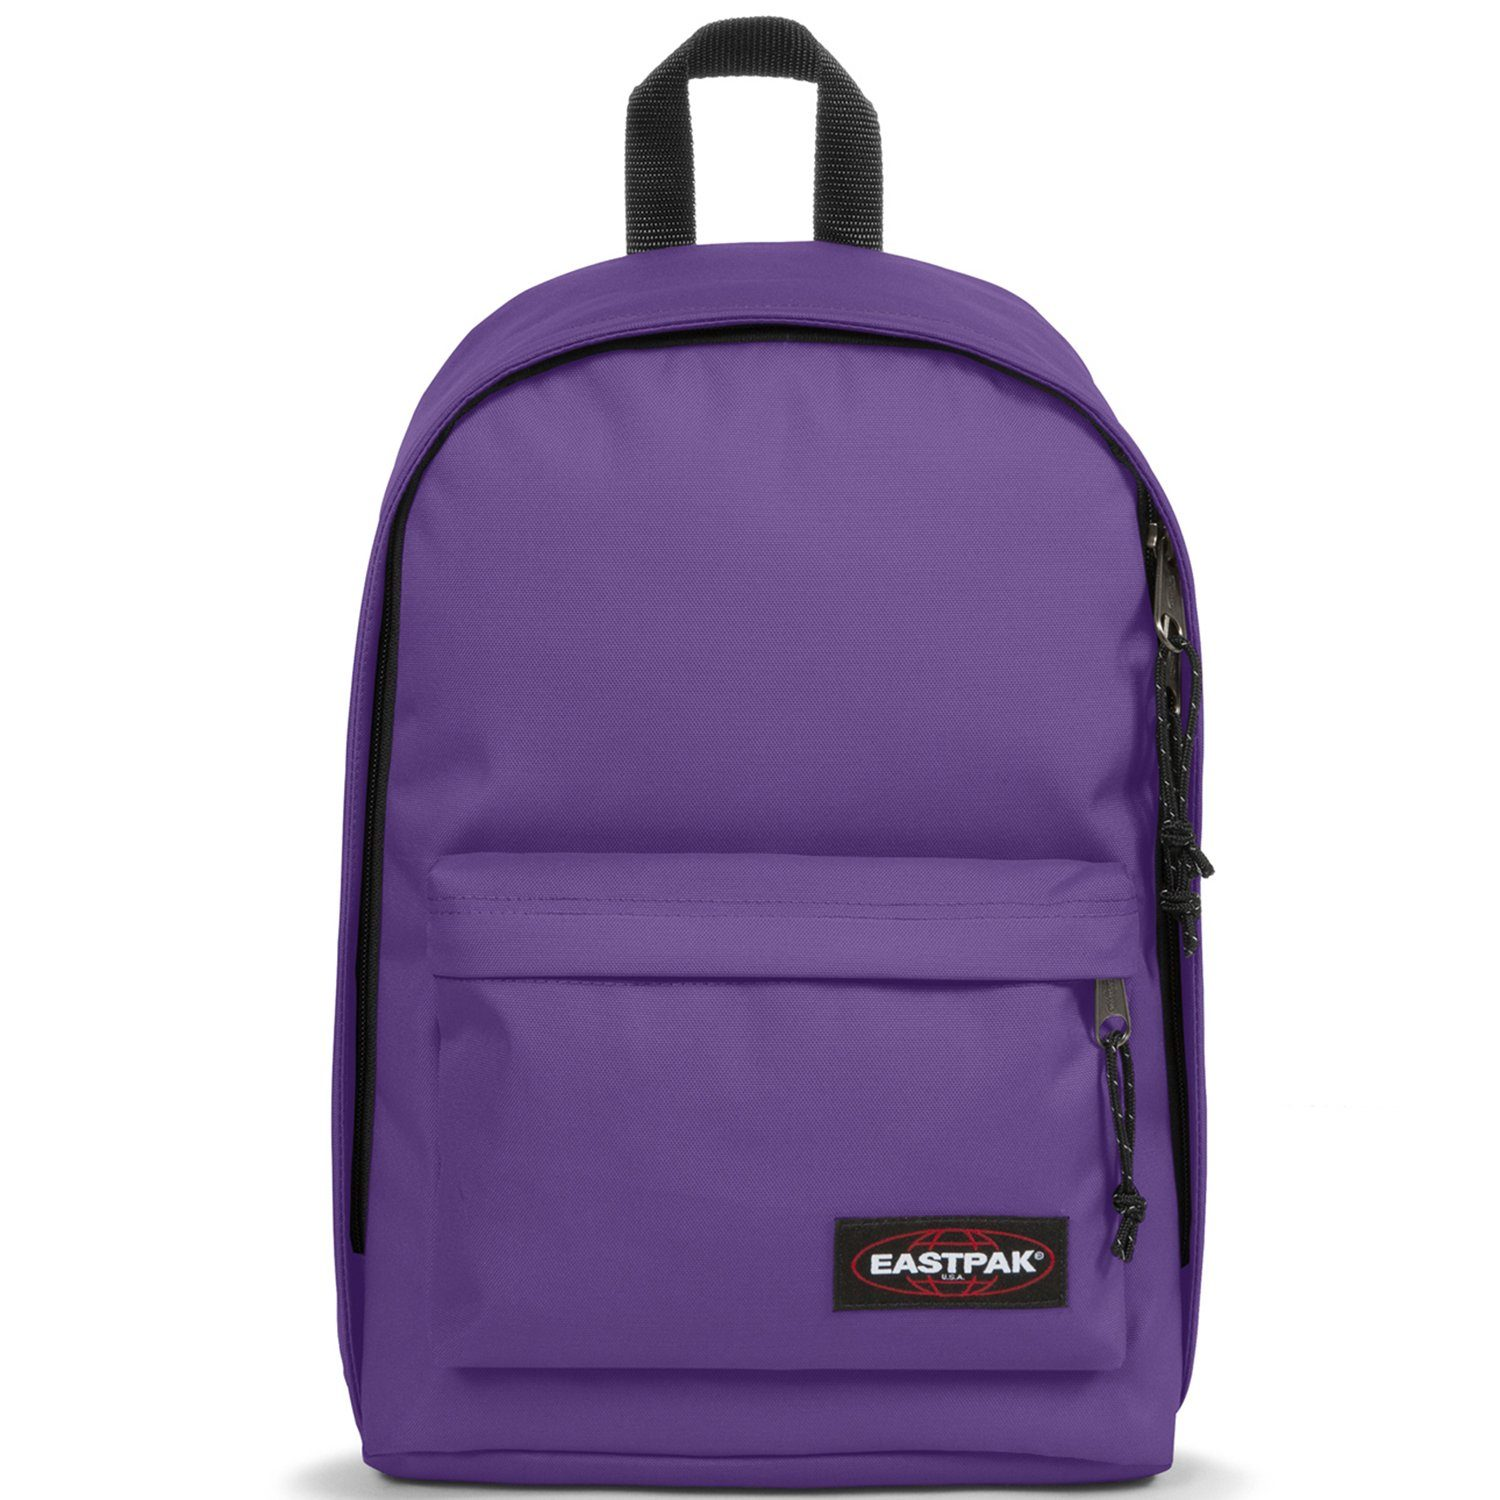 EASTPAK Authentic Collection Tordi 1 Rucksack 39 cm Tabletfach